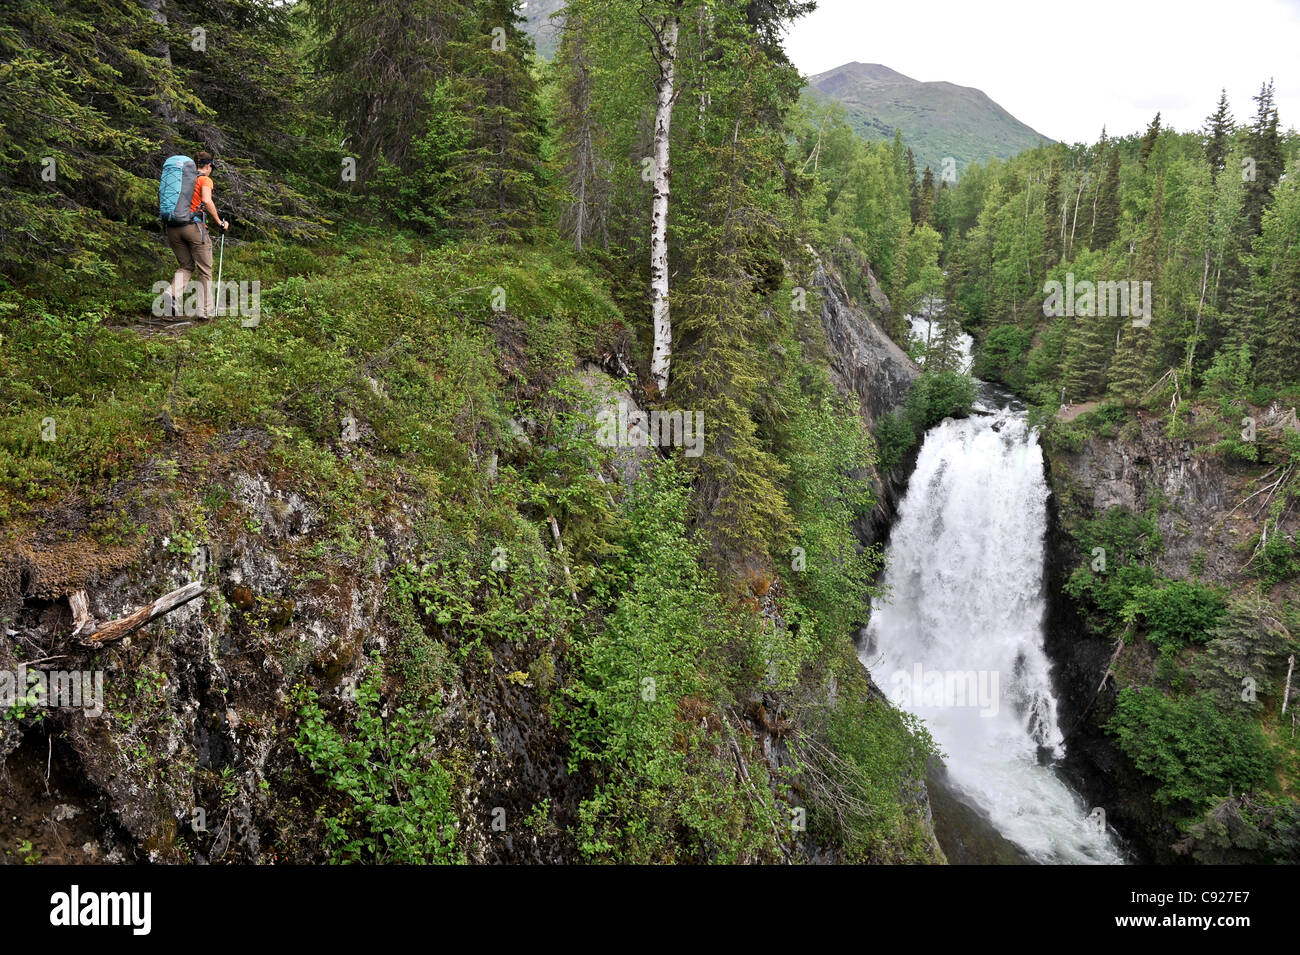 Woman hikes near Juneau Falls on the Resurrection Pass Trail in the Chugach National Forest, Southcentral Alaska, - Stock Image